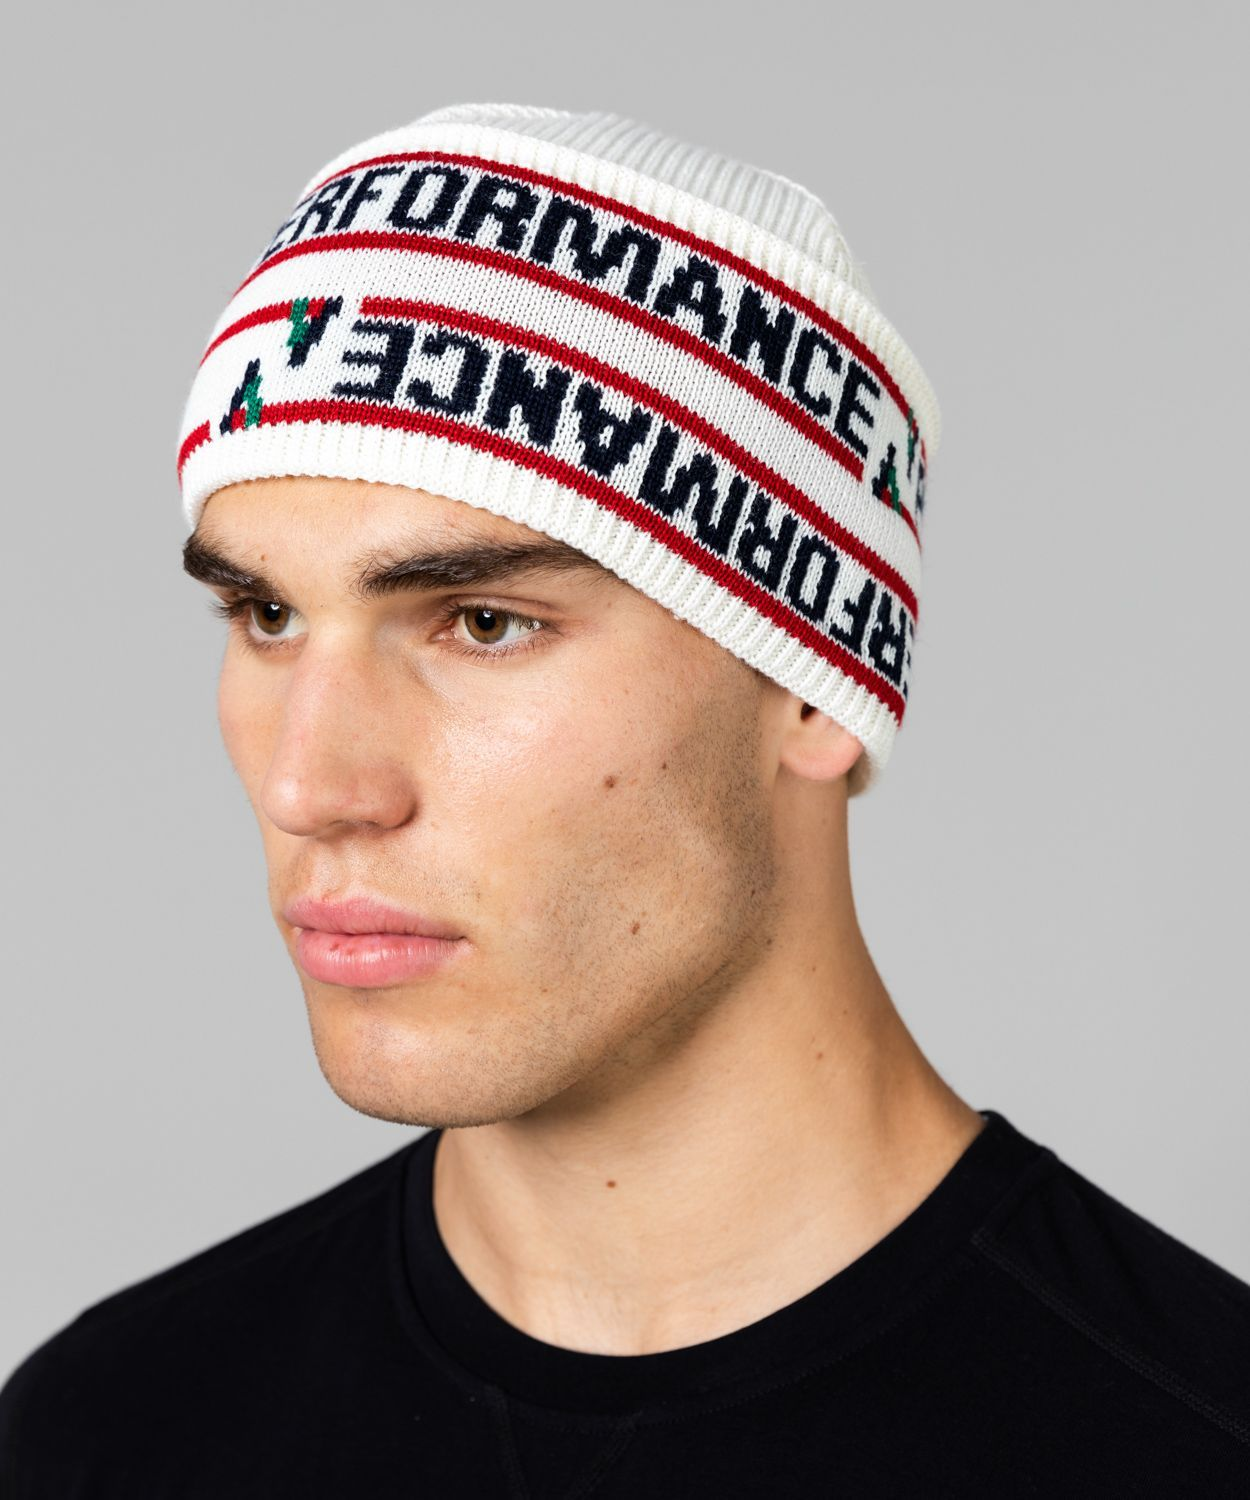 Peak Performance - Peakville Beanie Hats | Beanies Peak Performance